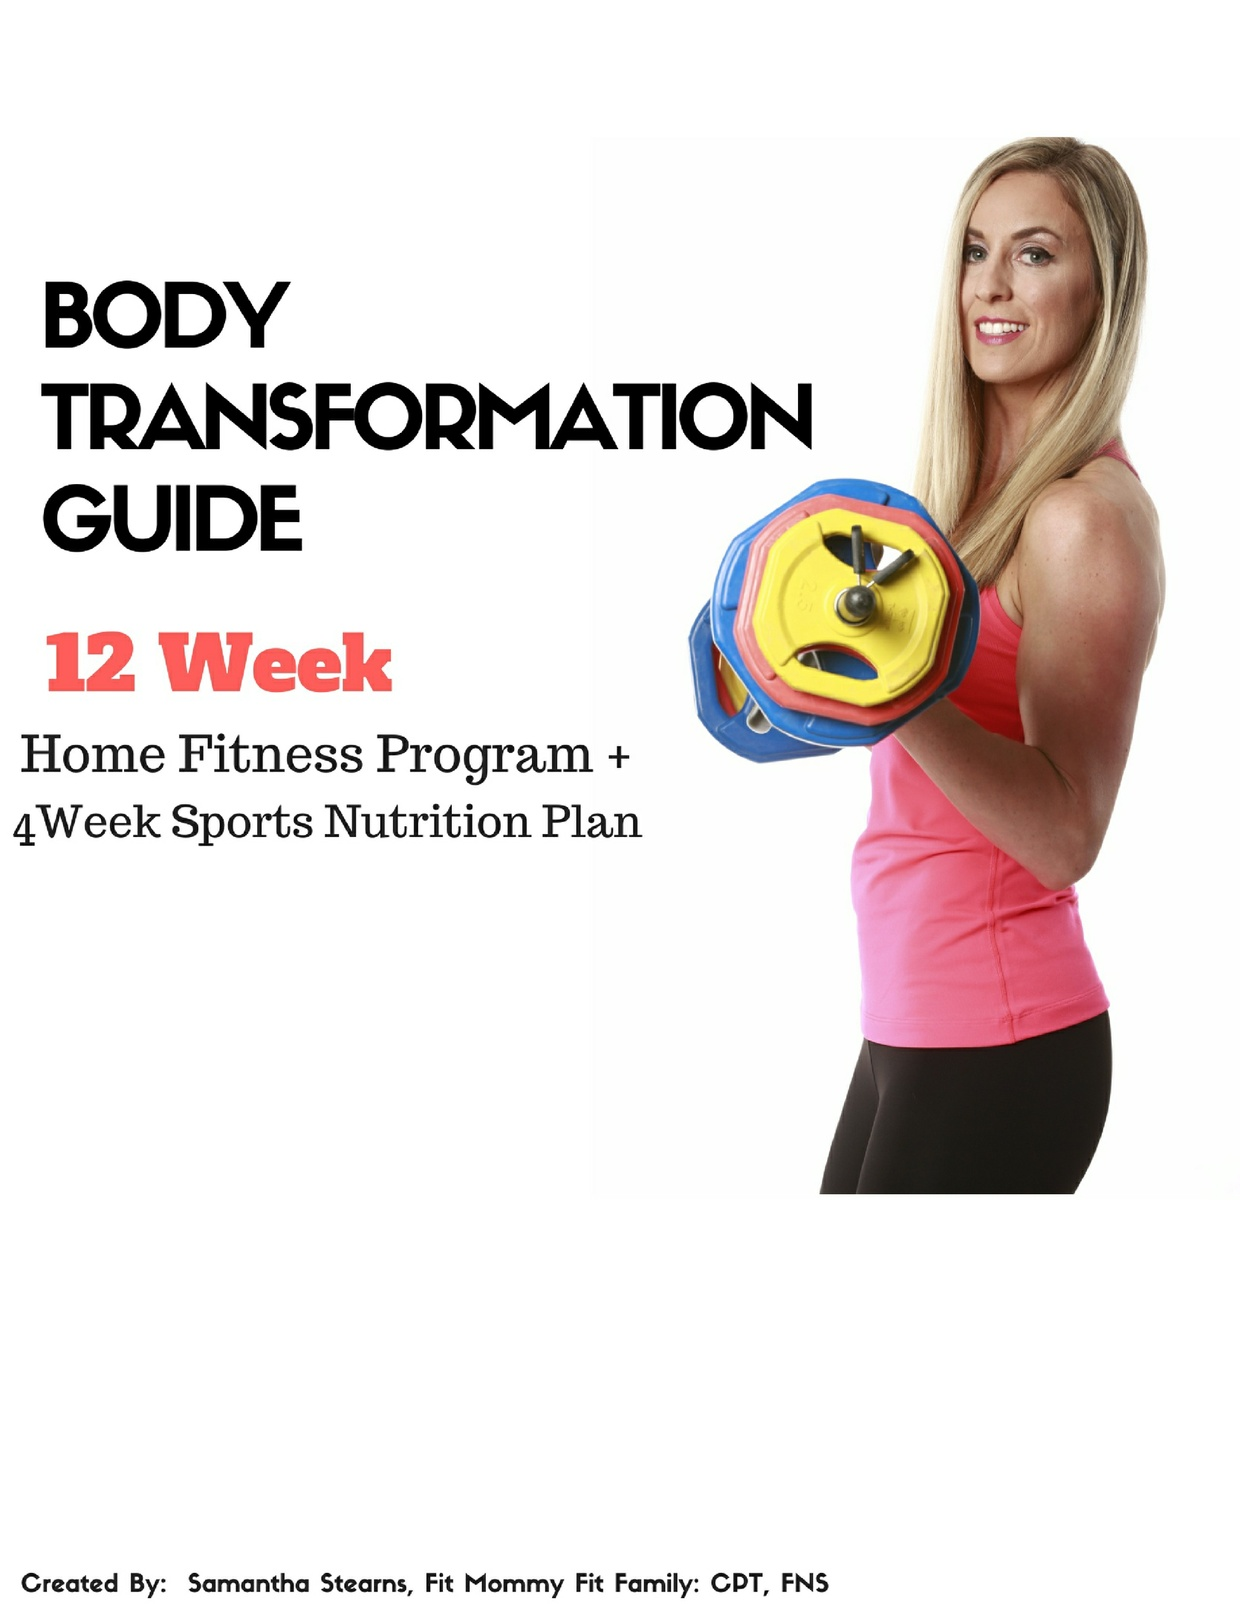 Body Transformation Guide + 4 Weeks of Sports Nutrition Plans